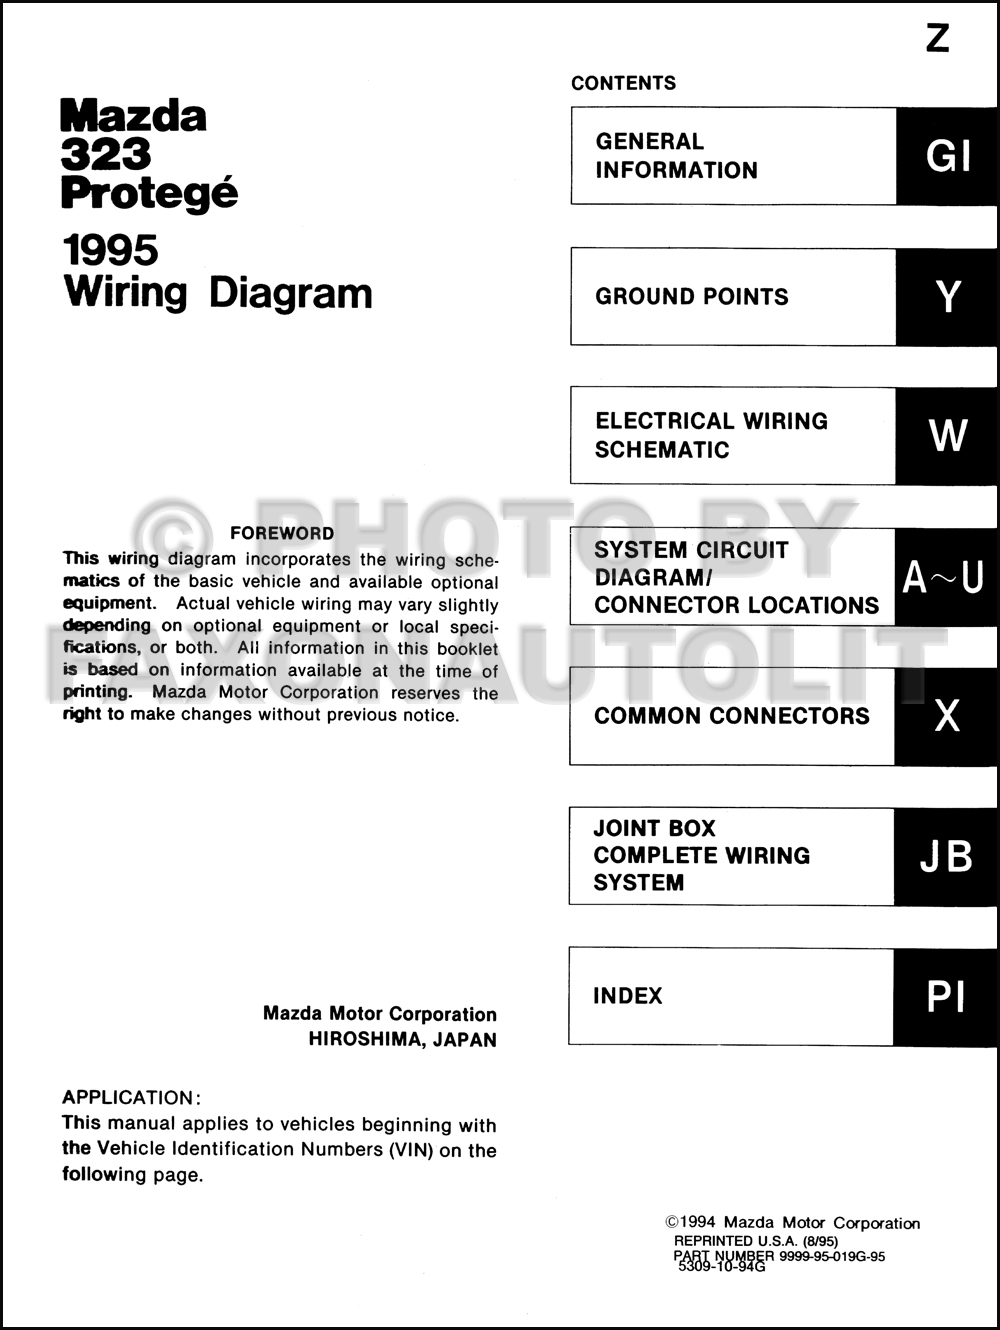 mazda protege stereo wiring diagrams color coded honda cb450 glenn 39s wiring diagram color coded #10